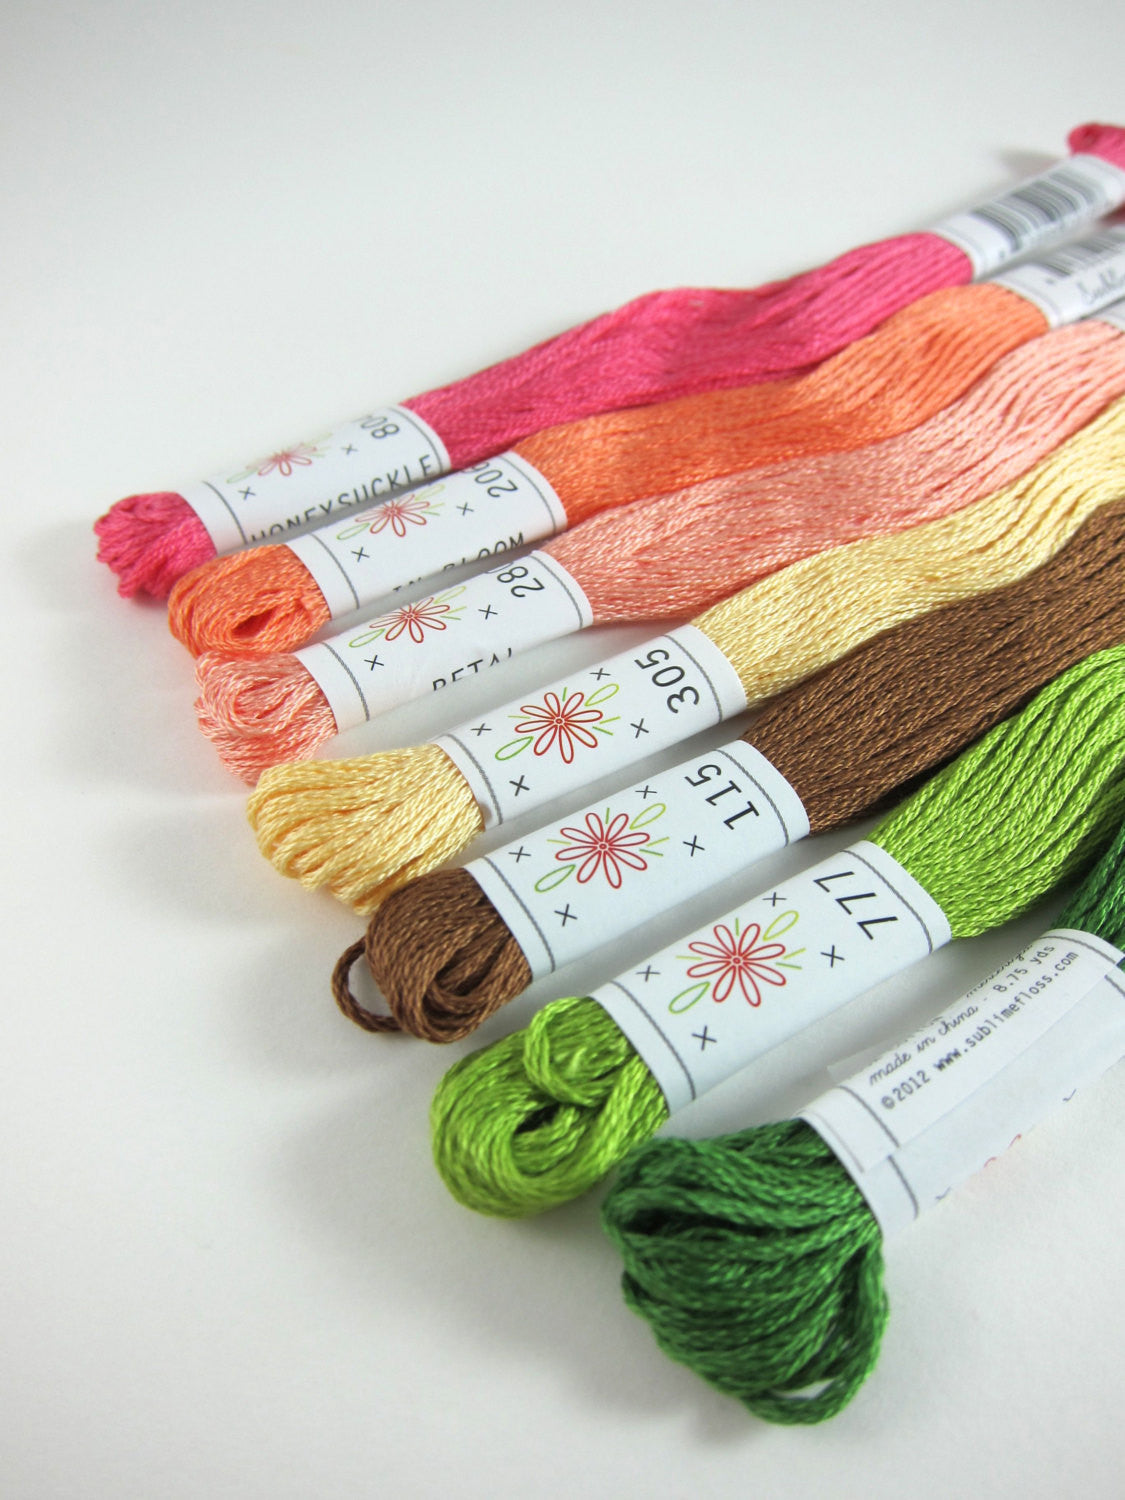 Embroidery Floss Set - Sublime Stitching Flower Box Palette Floss - Snuggly Monkey